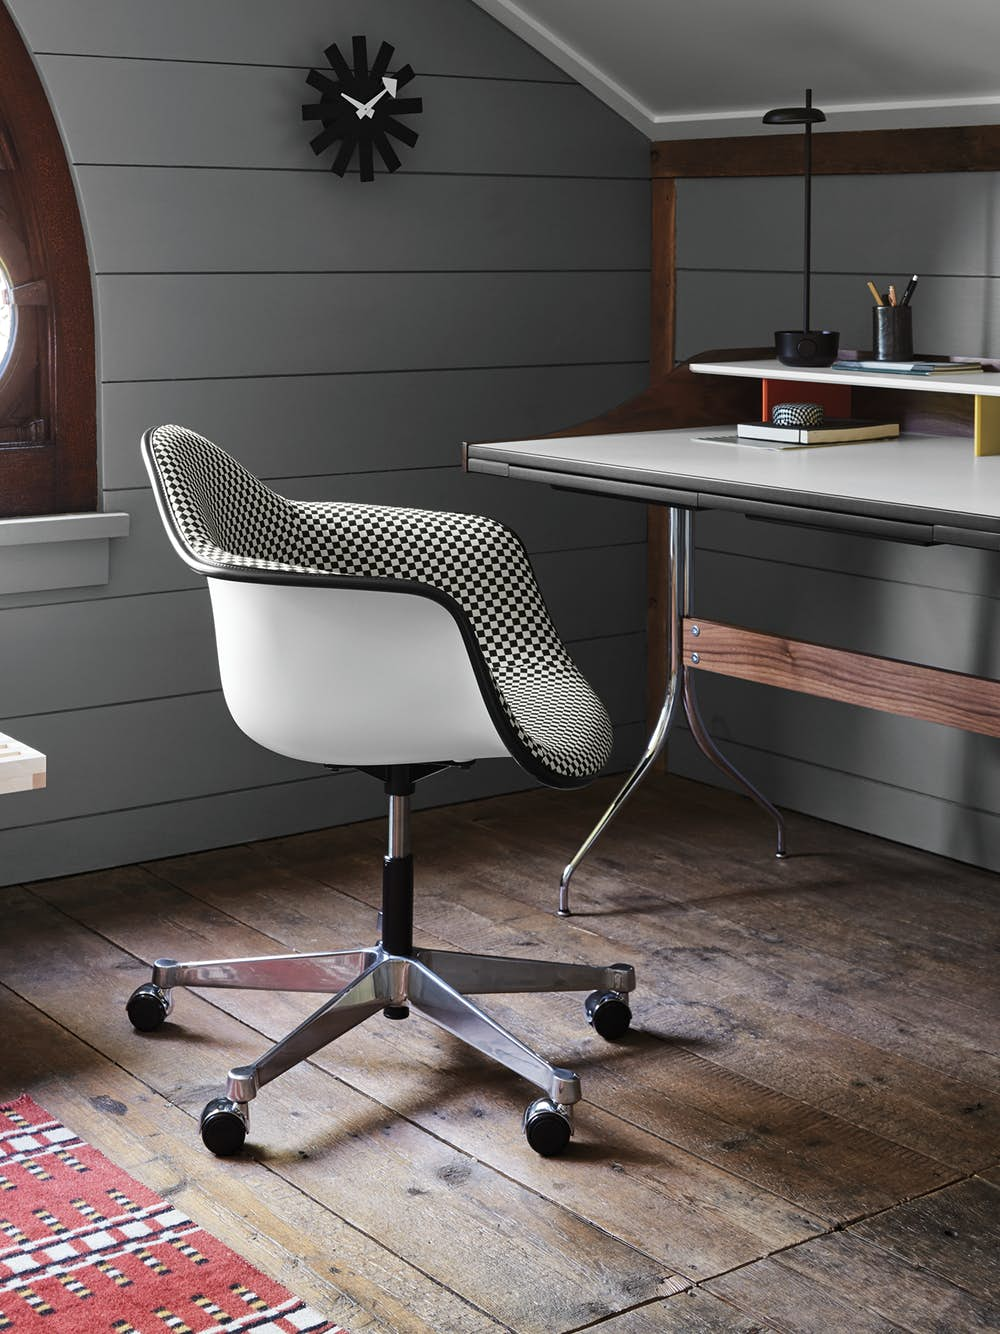 An Eames Molded Fiberglass Chair upholstered in a gray textile, seated in front of a Nelson Swag Leg Desk in an individual workstation setting.